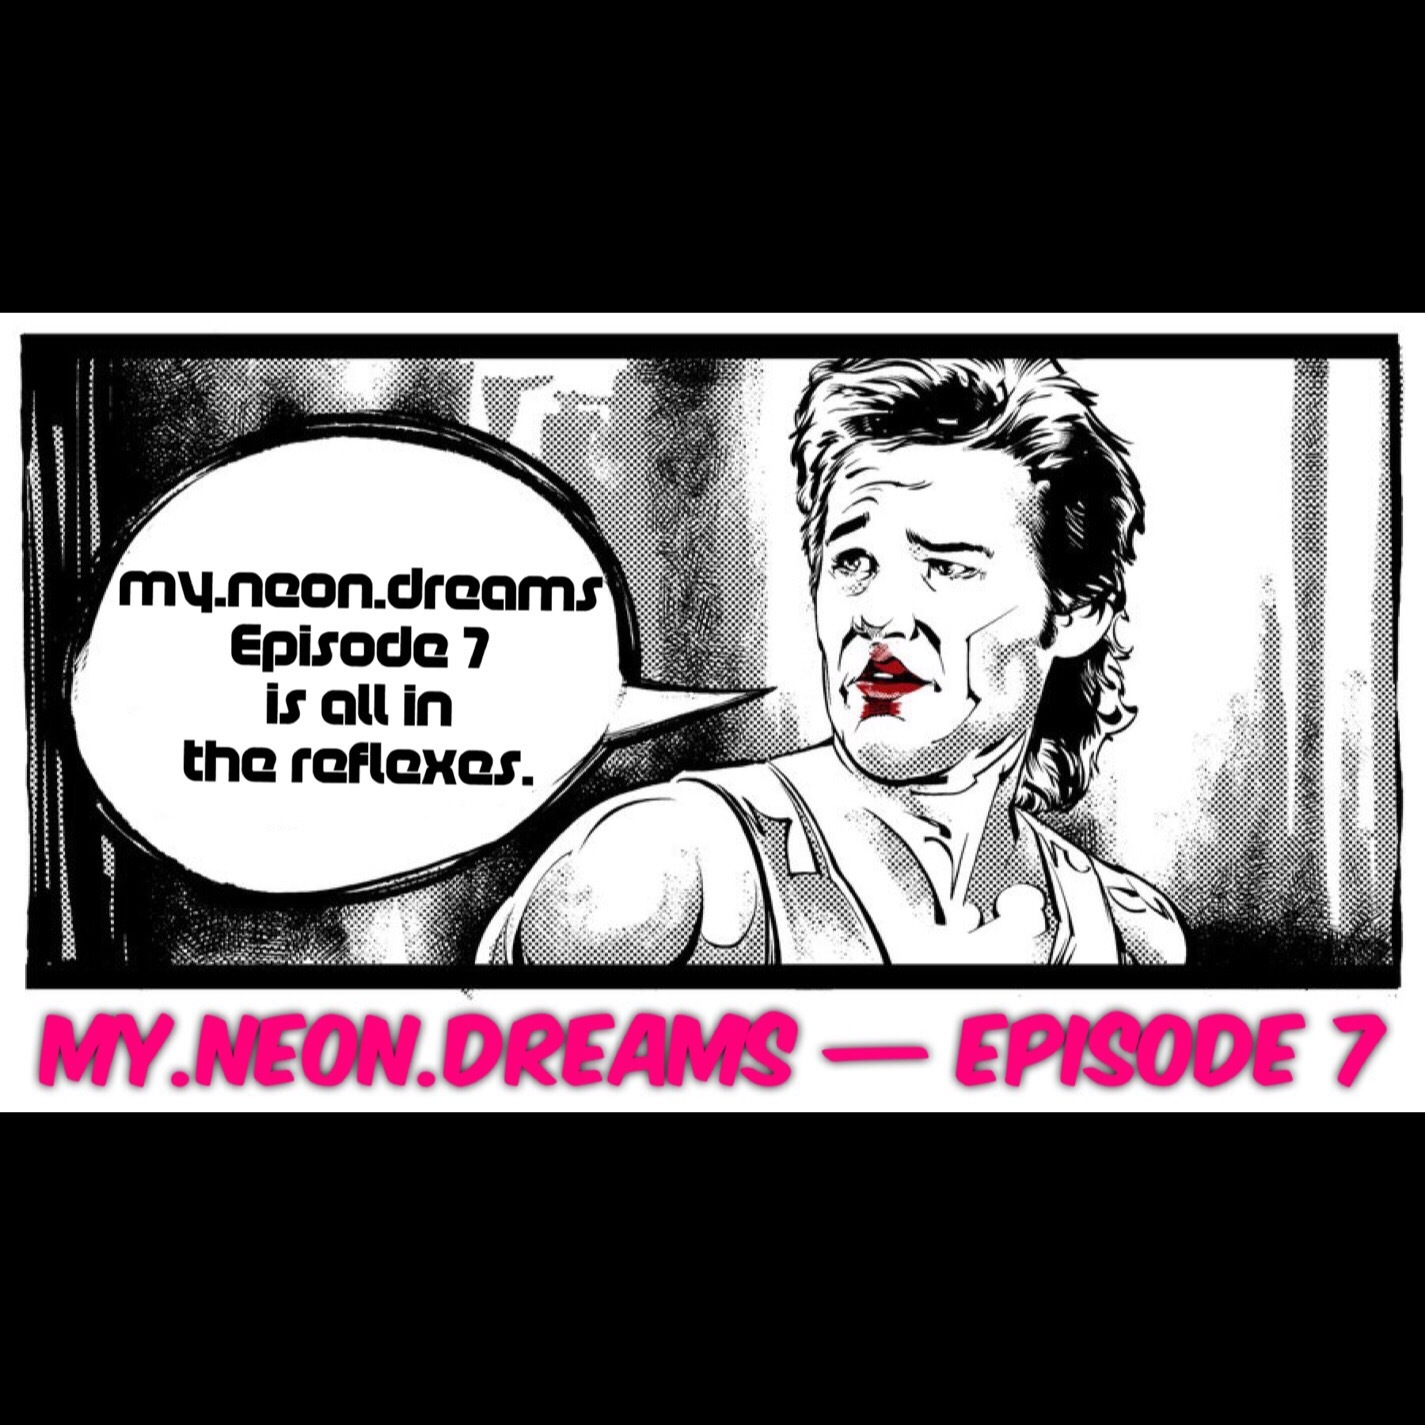 my.neon.dreams EPISODE 7